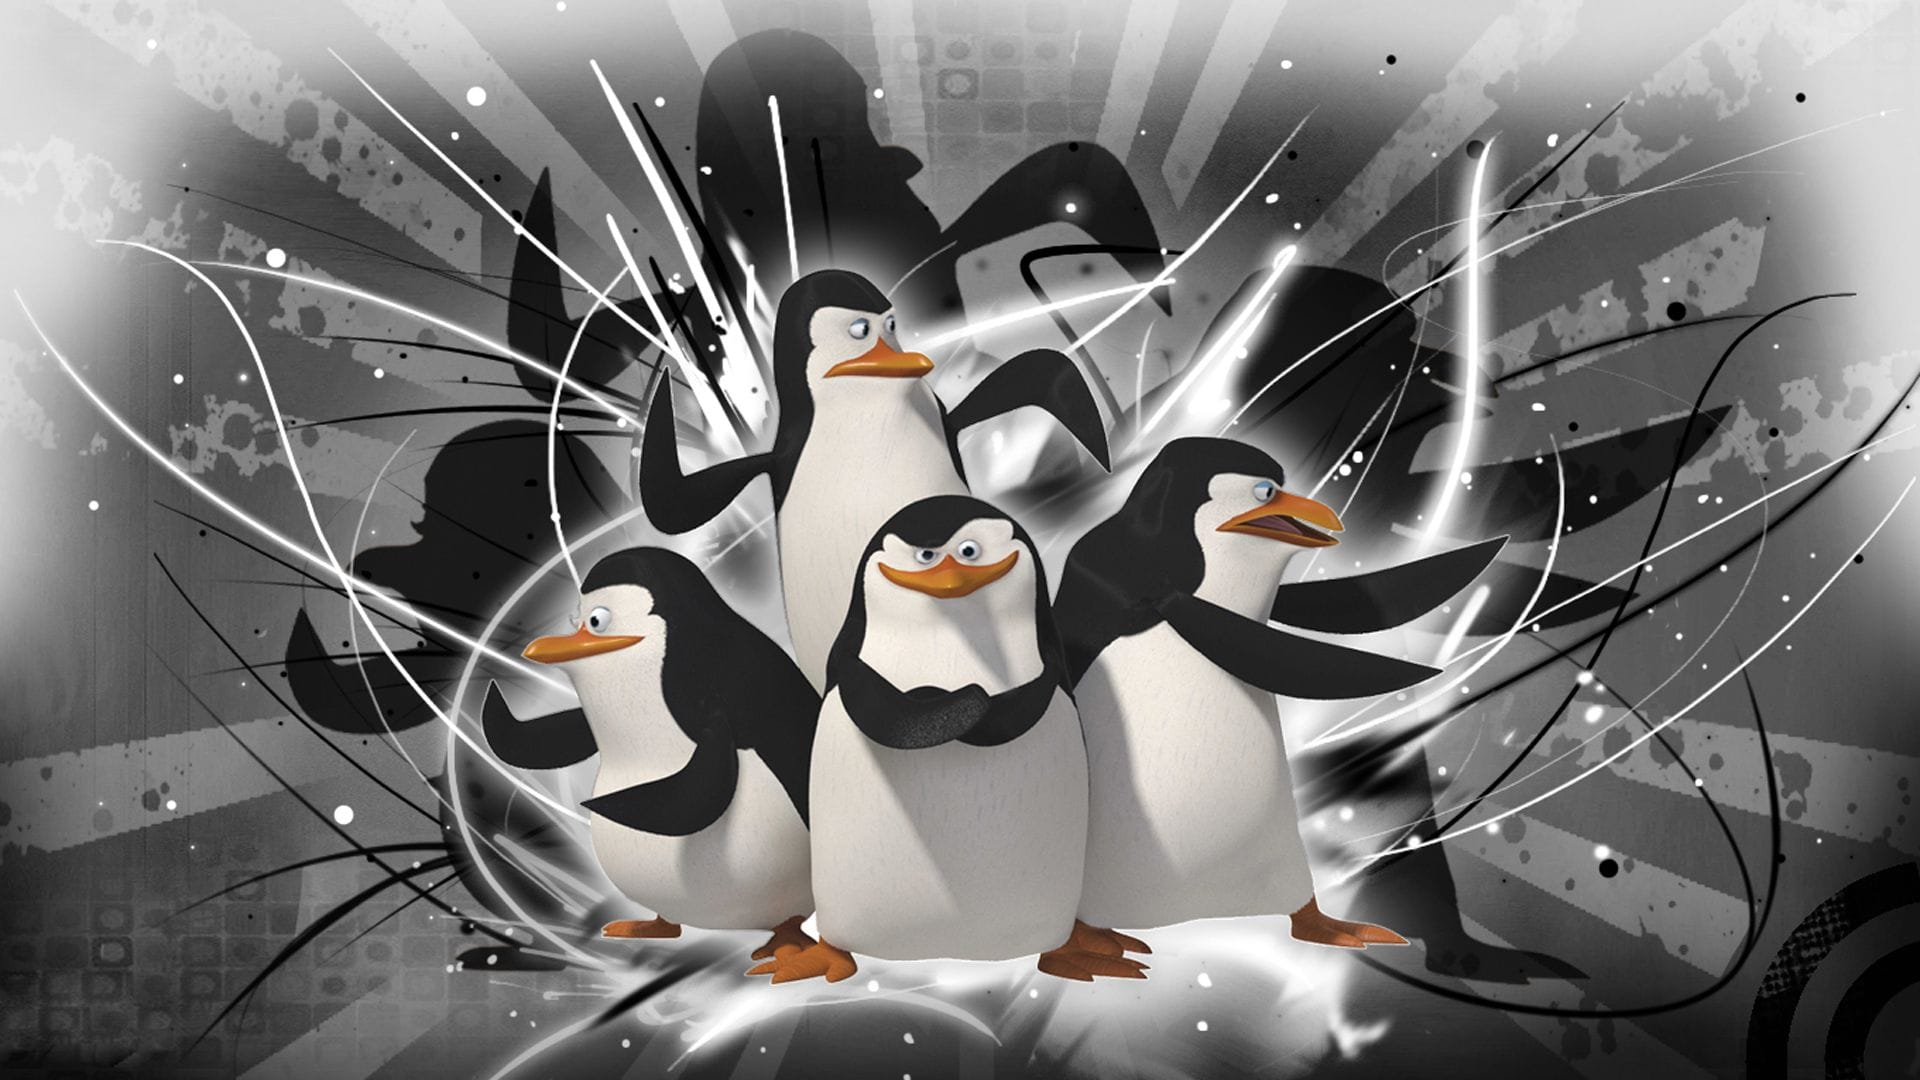 Penguins Of Madagascar full hd wallpapers